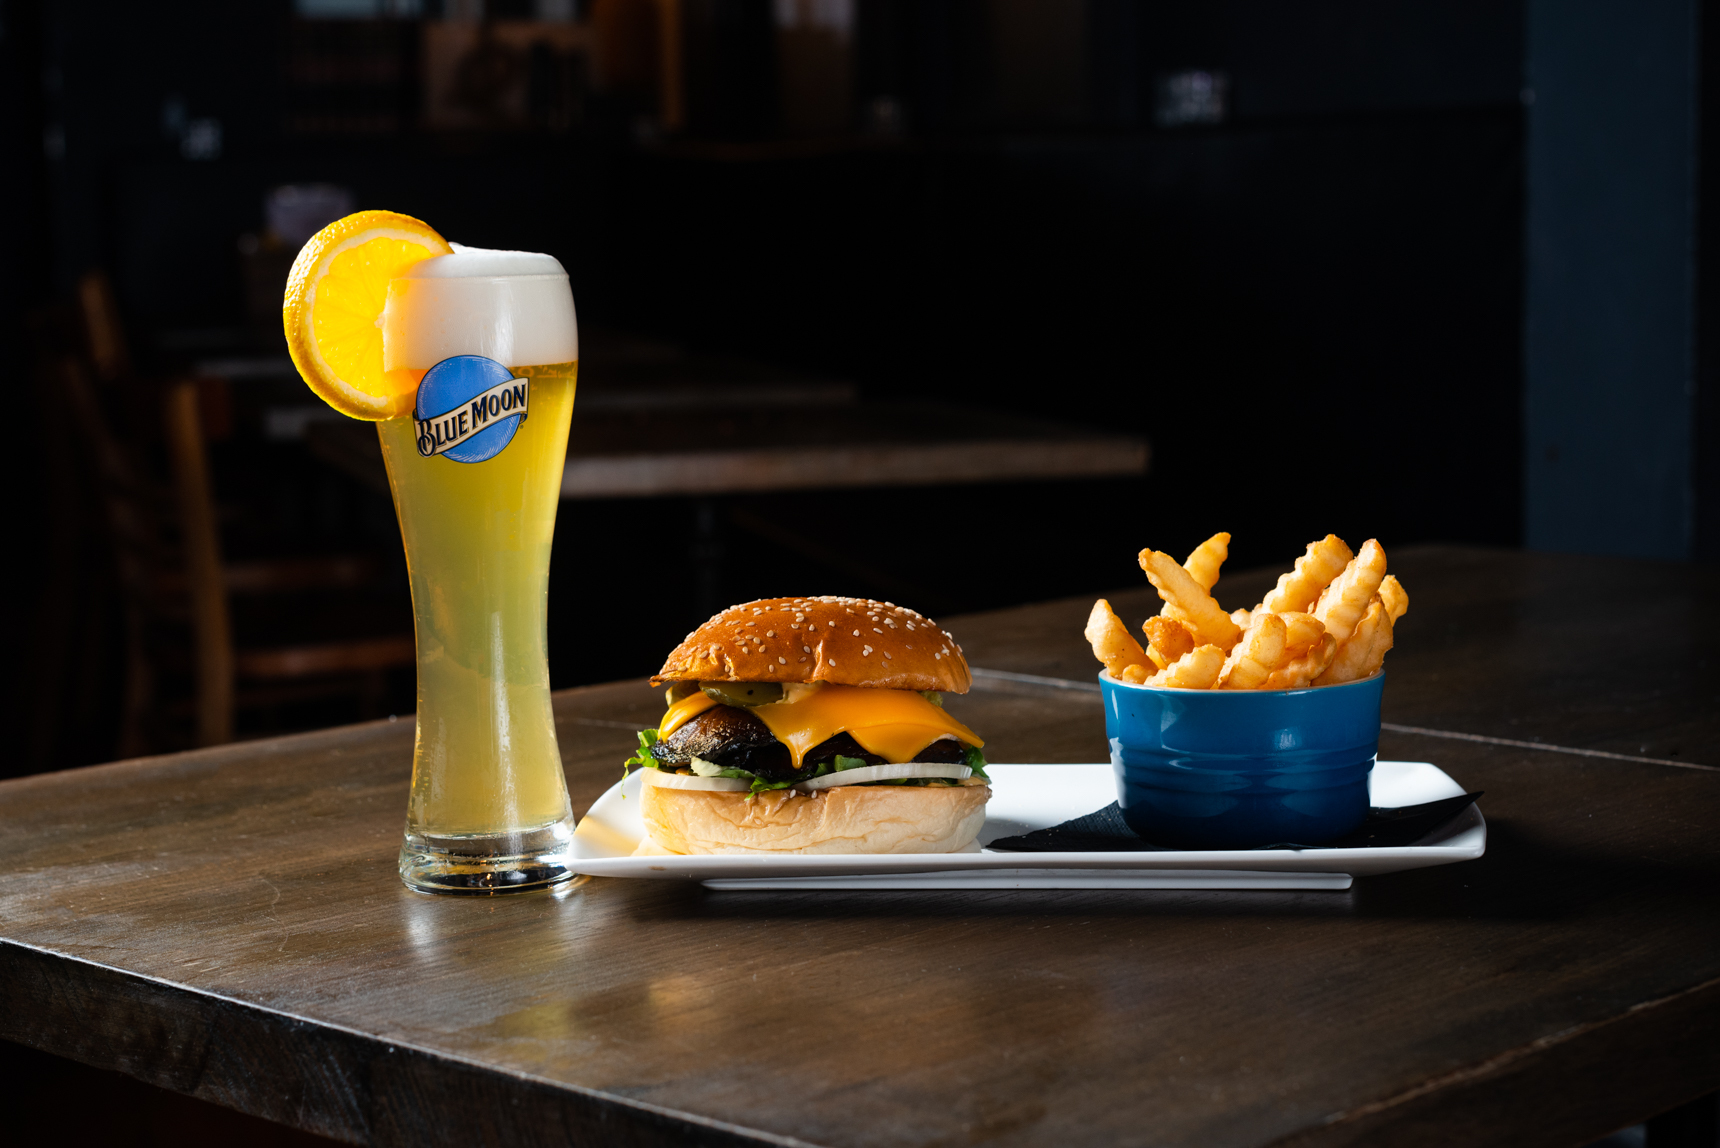 A Blue Moon beer and a mushroom burger and fries